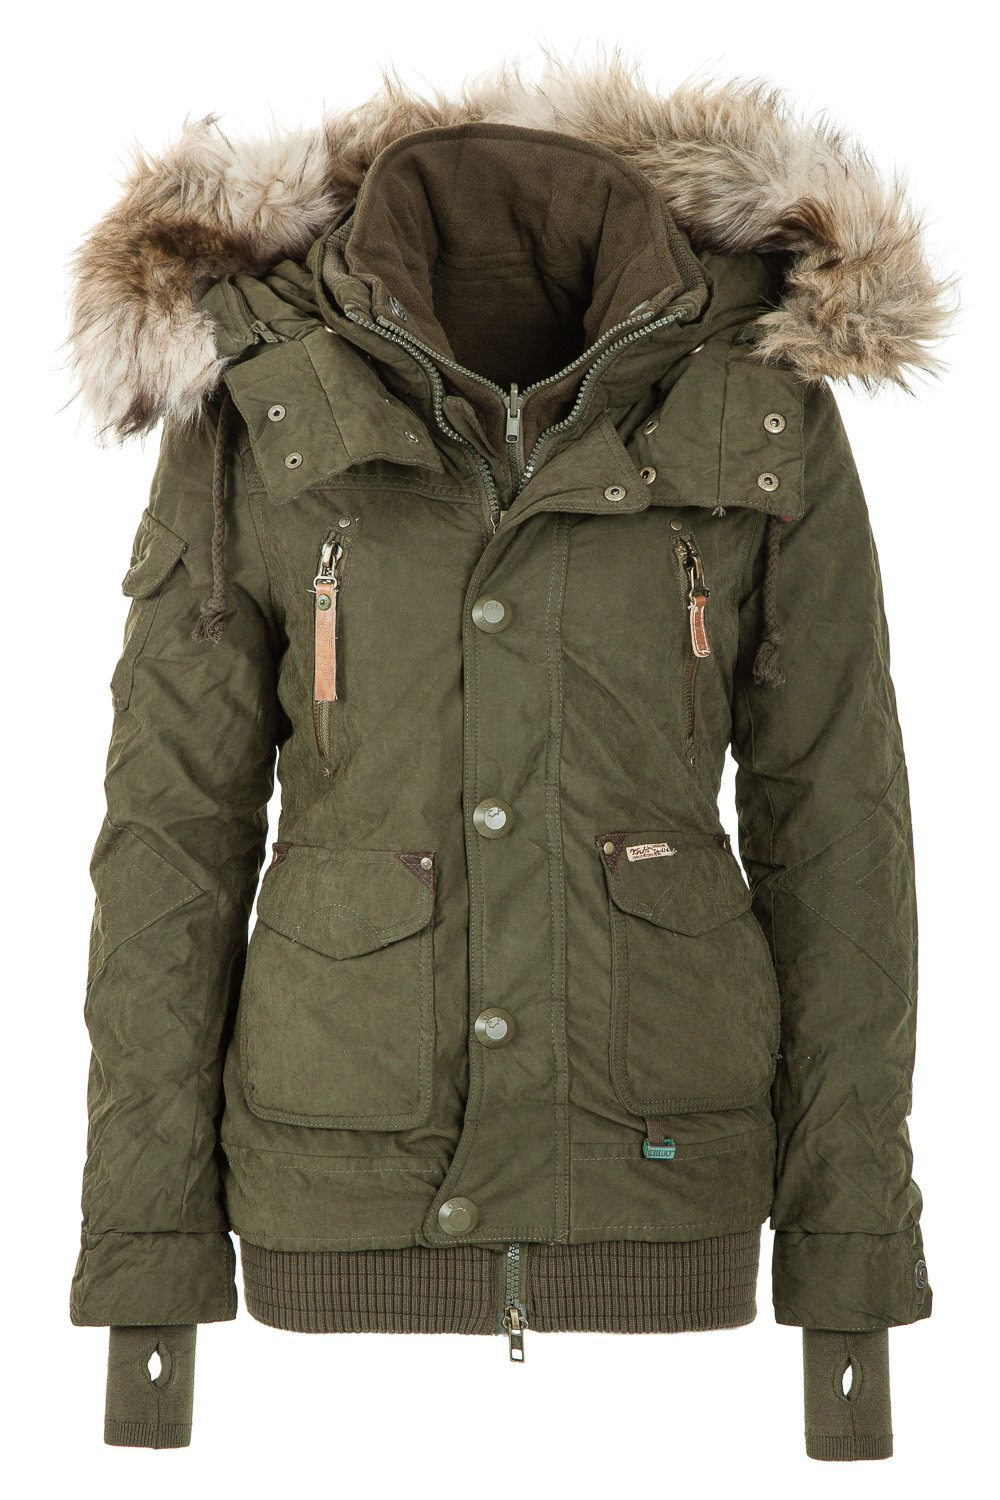 Winter Jackets for Women – Fashion dresses